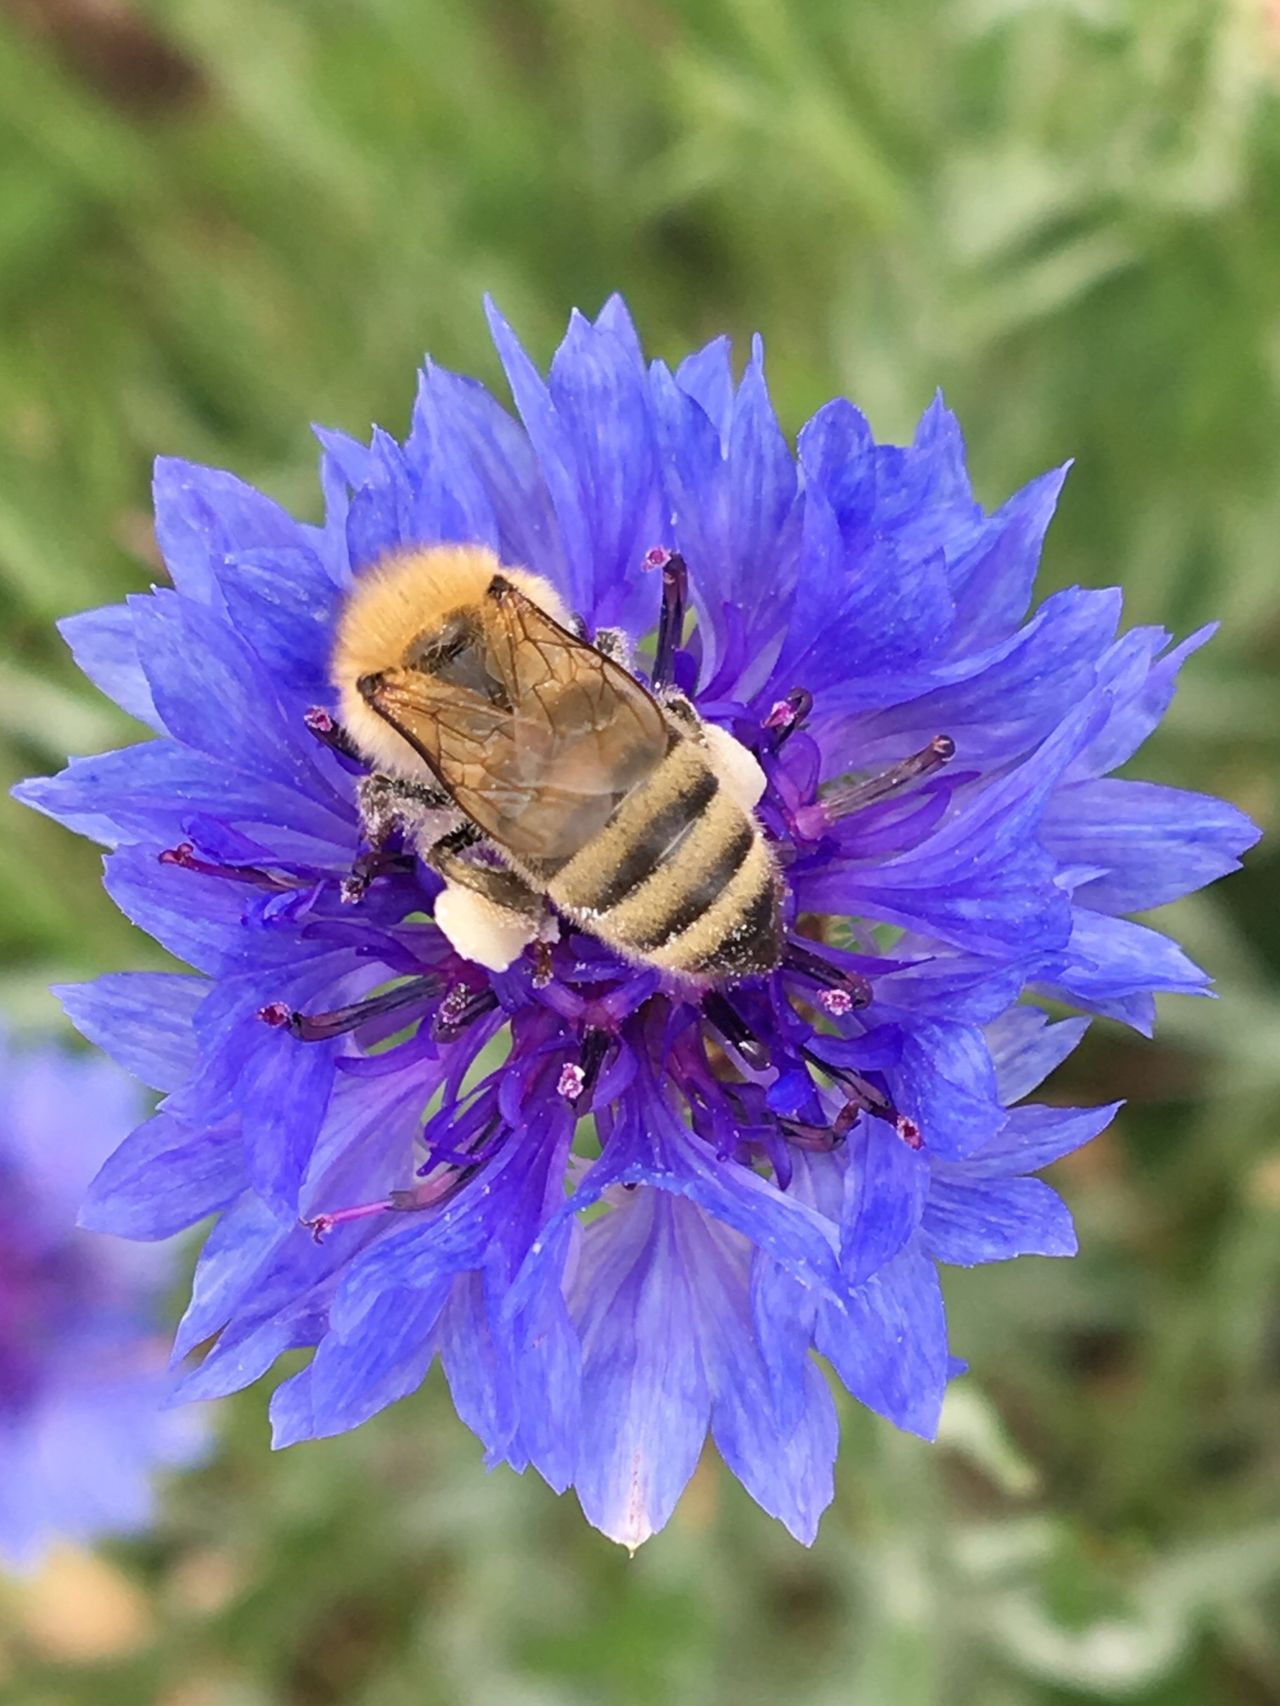 Bumblebee on cornflower Flower Cornflower Blue Blue Flower pollinator Hairy Little Body shiny wings Insect One Animal Nature Animals In The Wild Fragility Animal Themes Close-up Beauty In Nature Growth Focus On Foreground Petal Outdoors Day No People Flower Head Plant Freshness Pollination